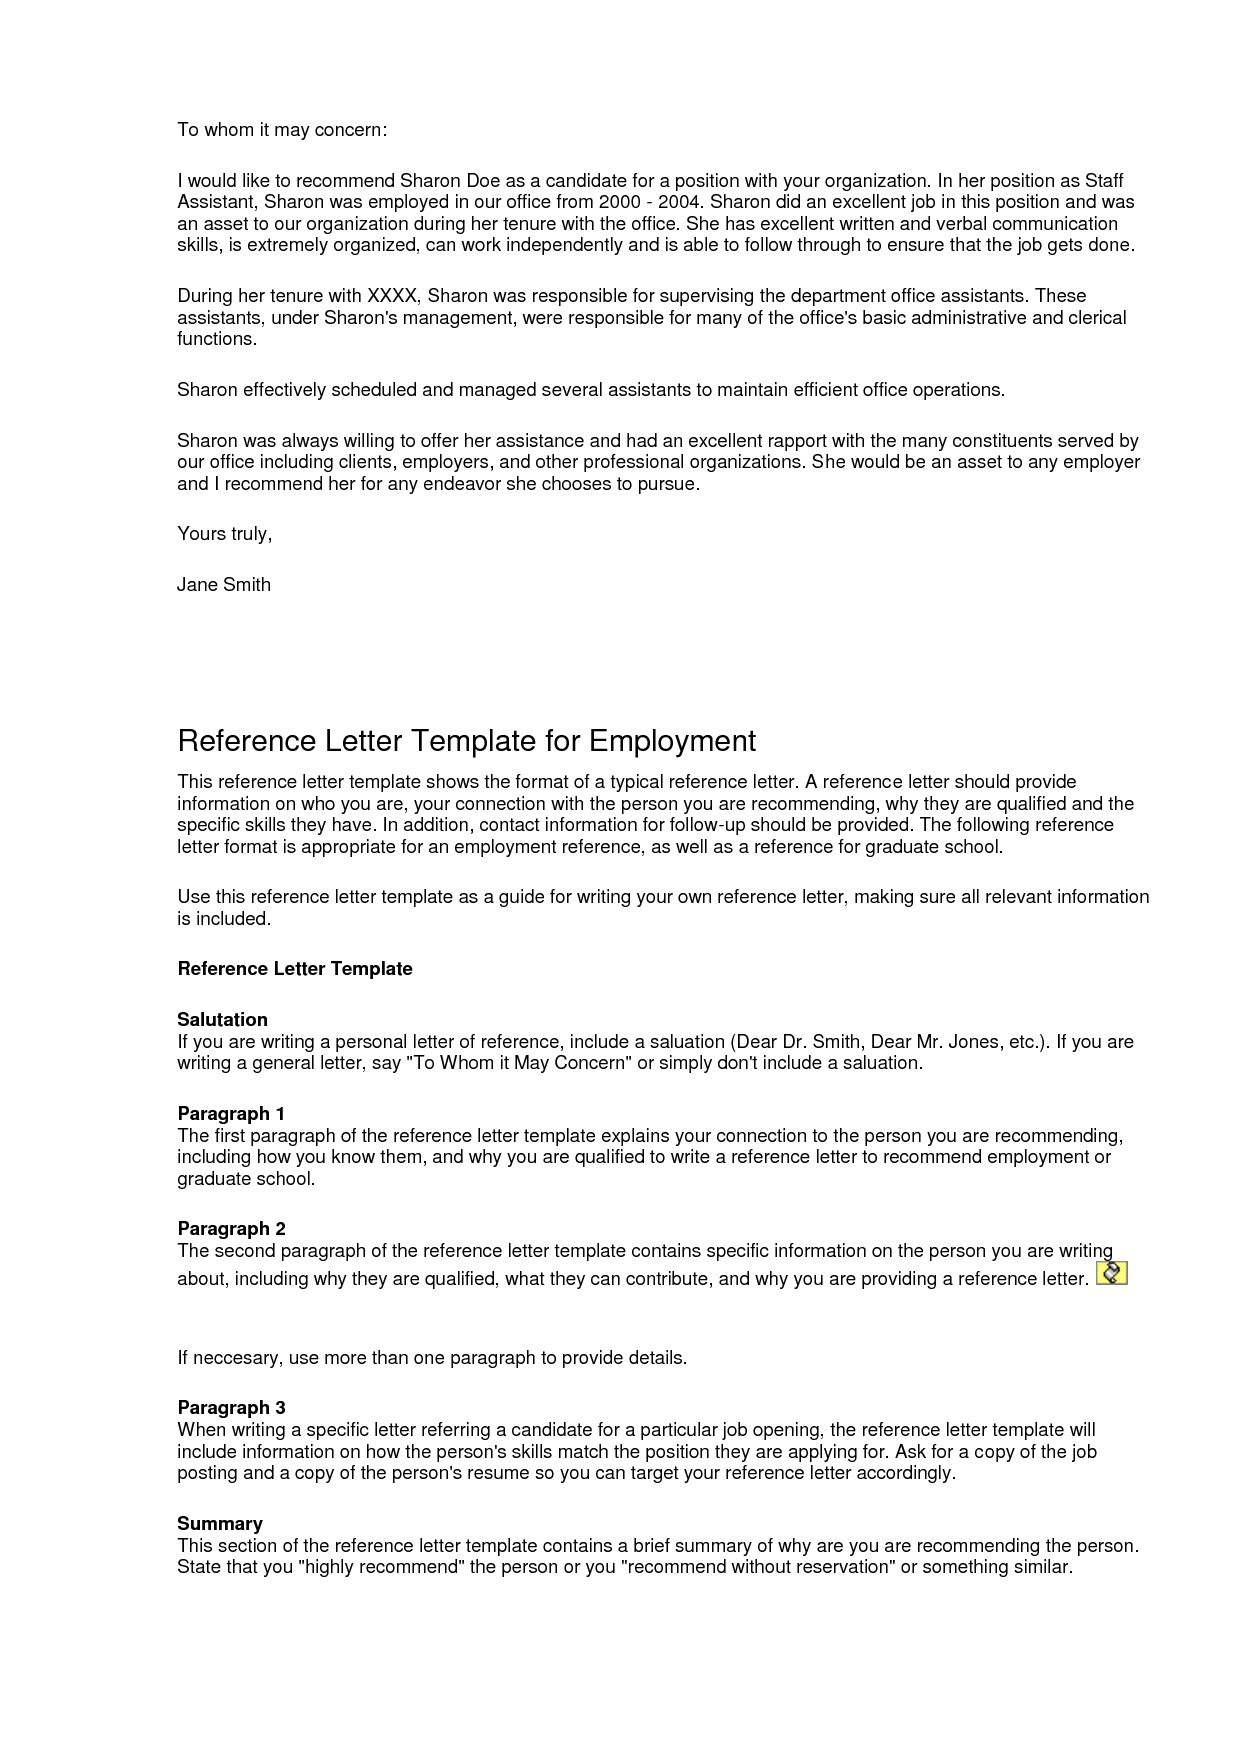 Generic Reference Letter Template - Professional Job Re Mendation Letter Sample Fresh Sample Re